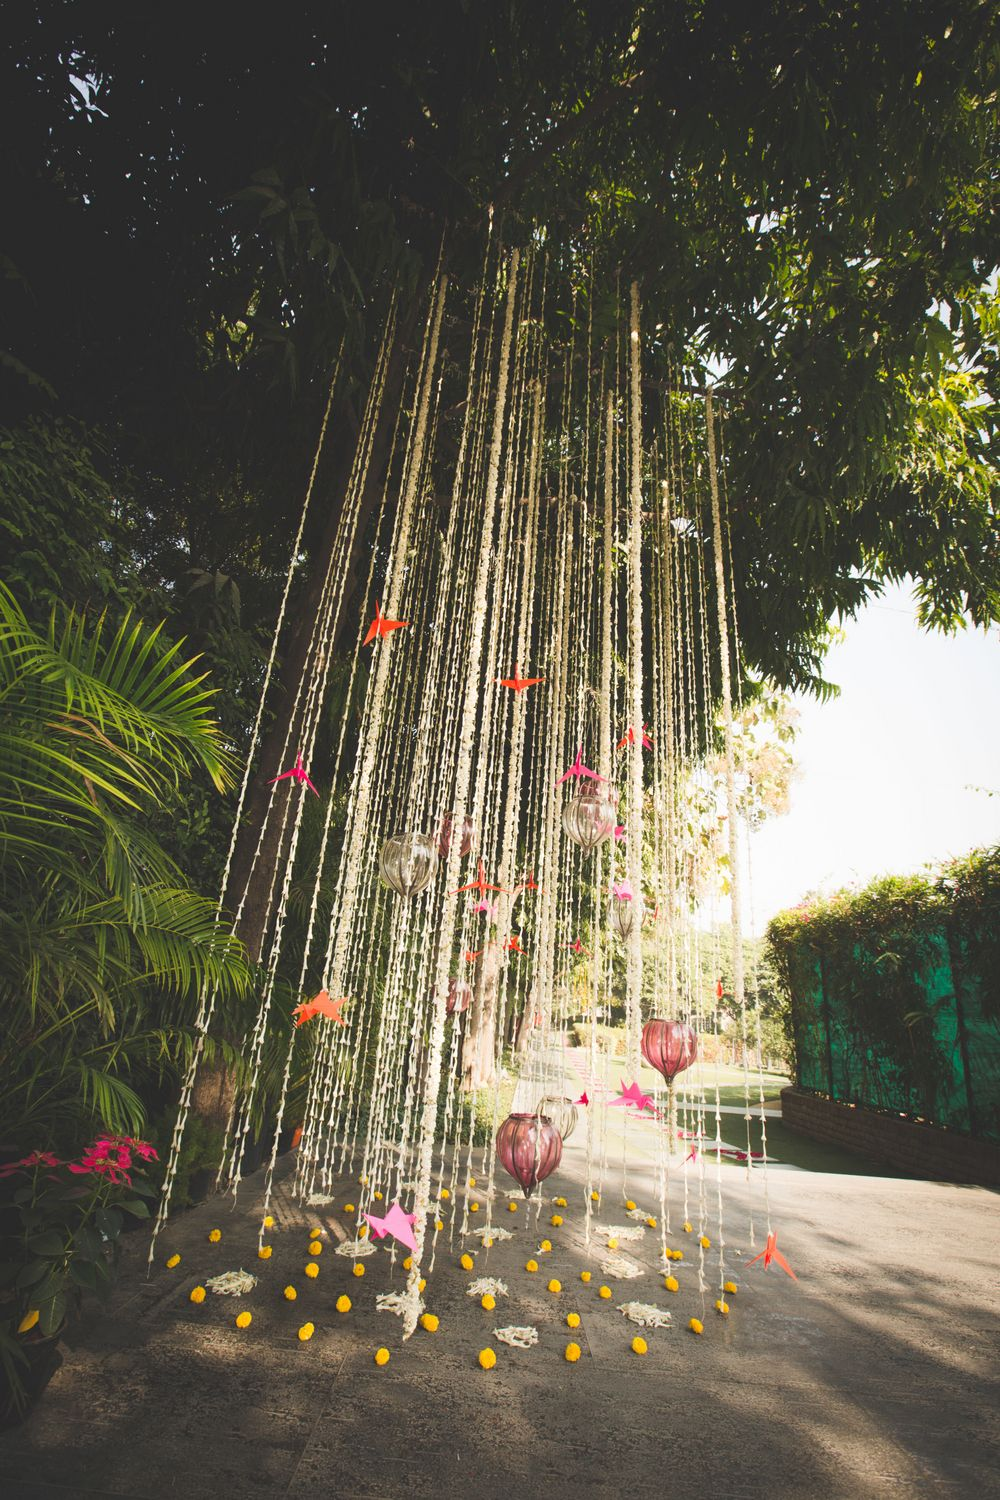 Photo of tree decor idea with hanging floral strings